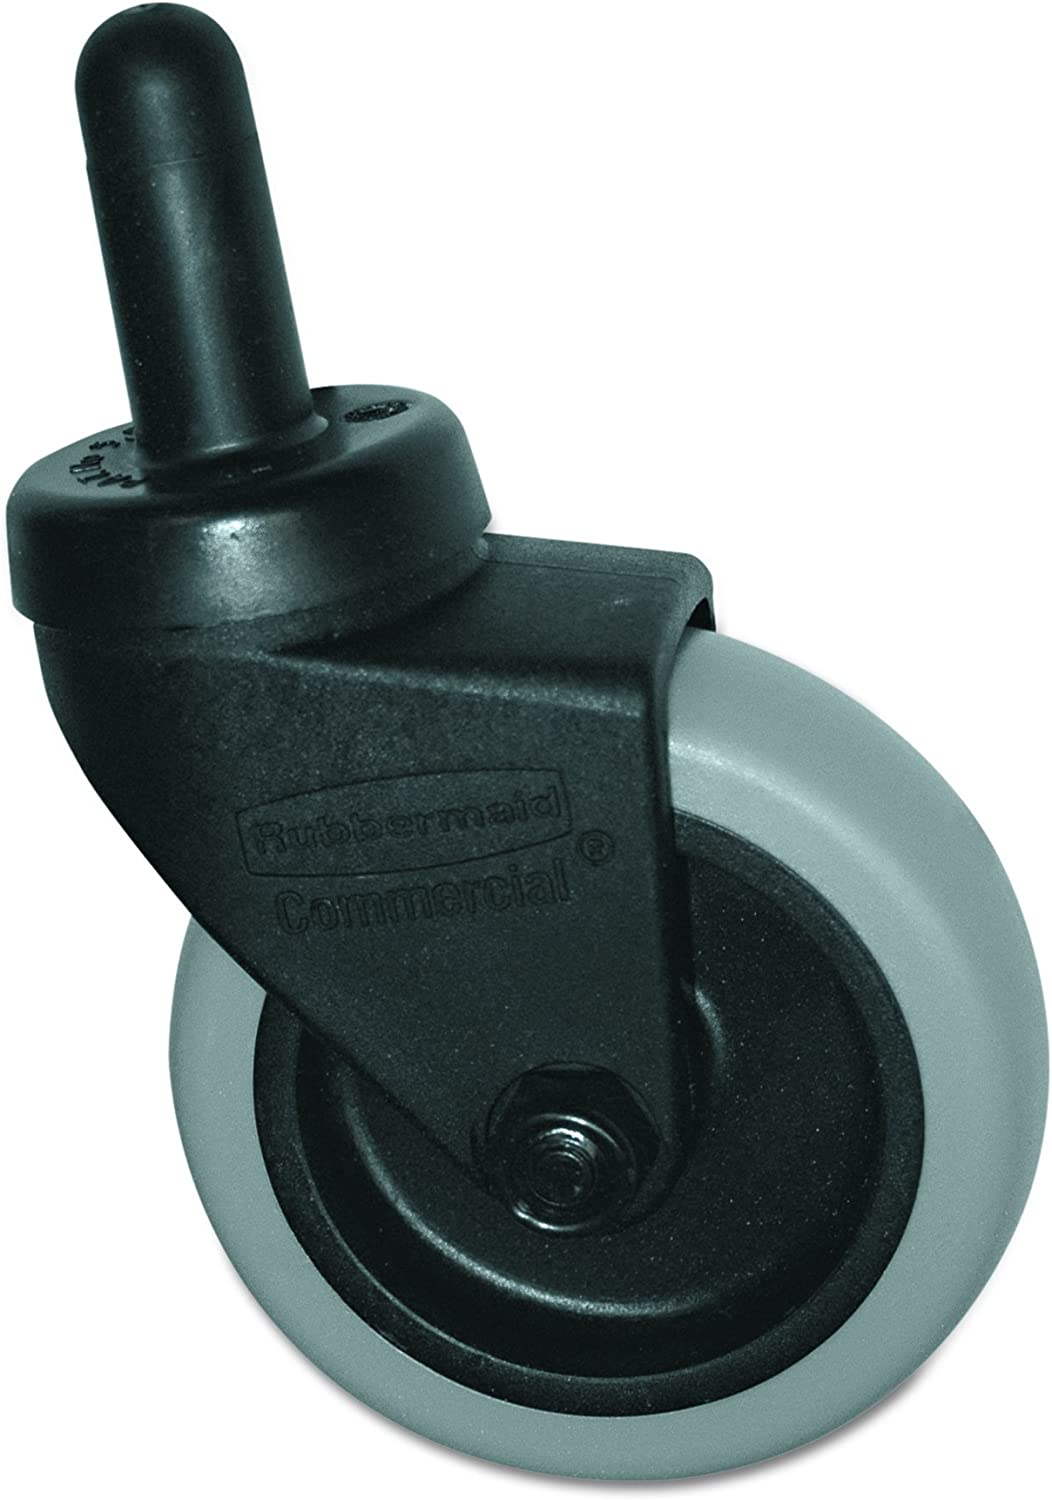 Rubbermaid Commercial 7570L2 Replacement Swivel Bayonet Casters with 3 Wheel and Thermoplastic Rubber Black